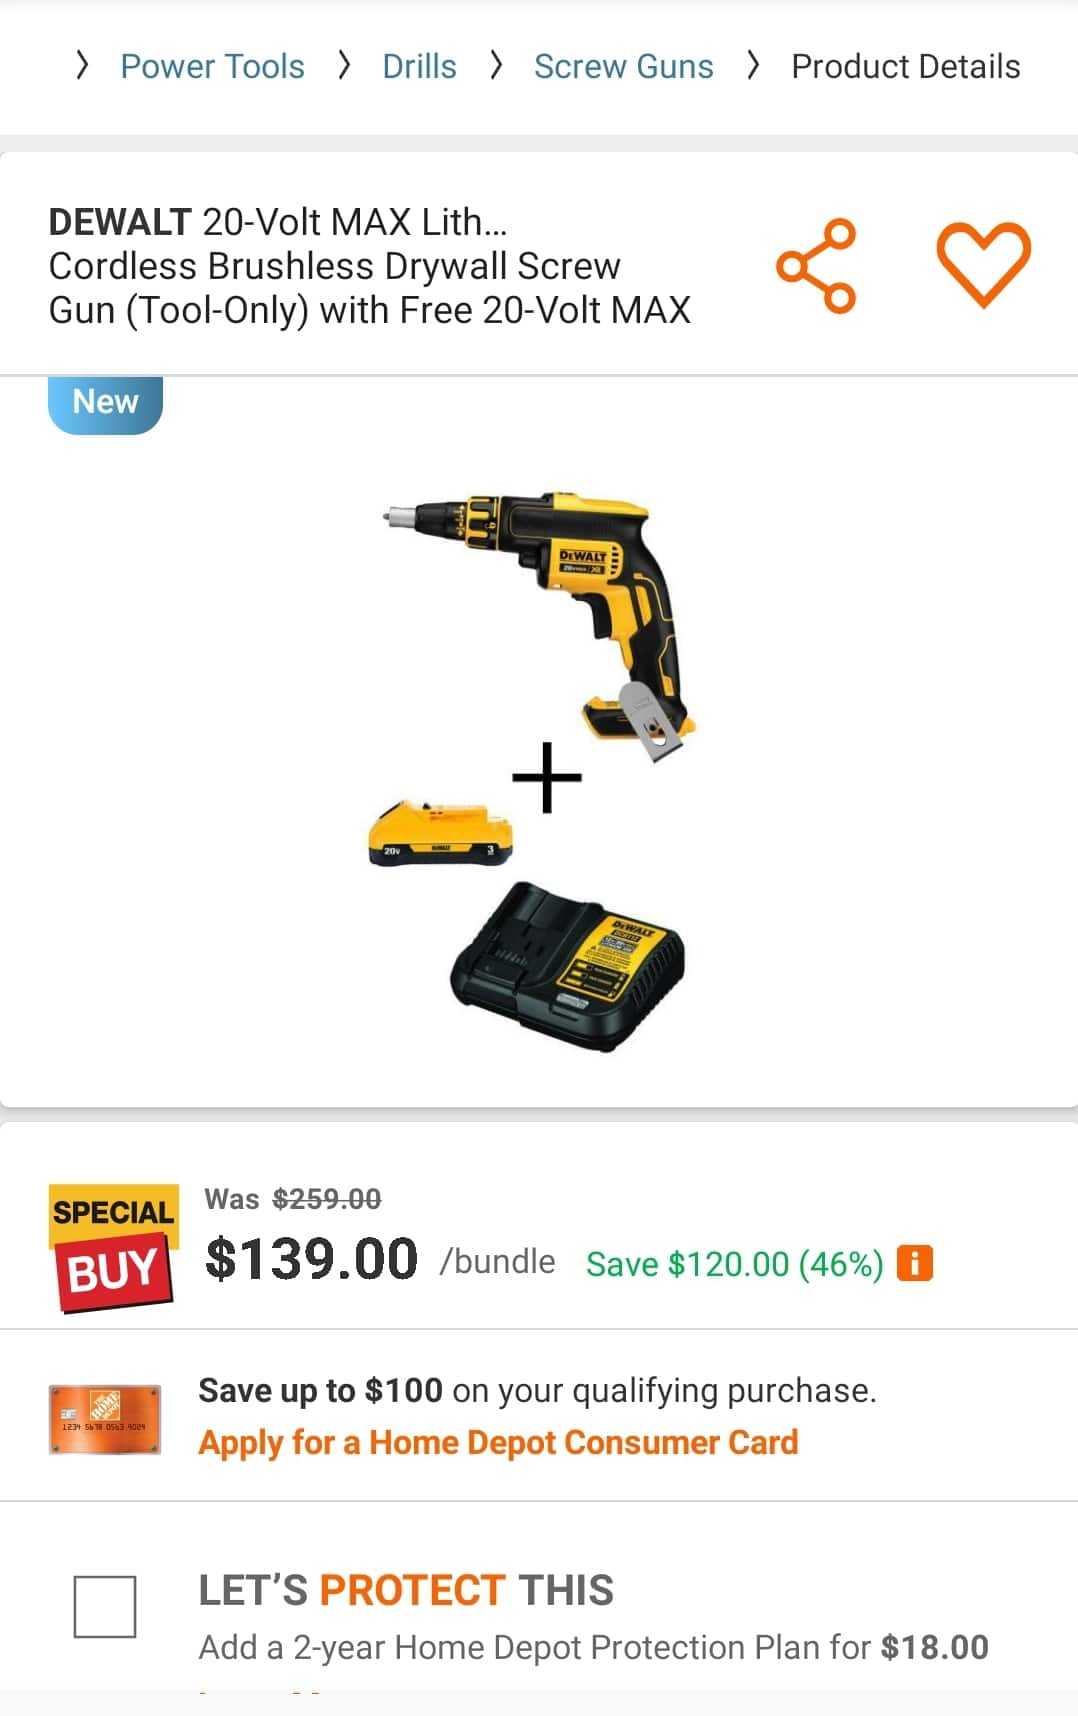 $139 20-Volt MAX Lithium-Ion Cordless Brushless Drywall Screw Gun (Tool-Only) with Free 20-Volt MAX Battery 3.0Ah & Charger